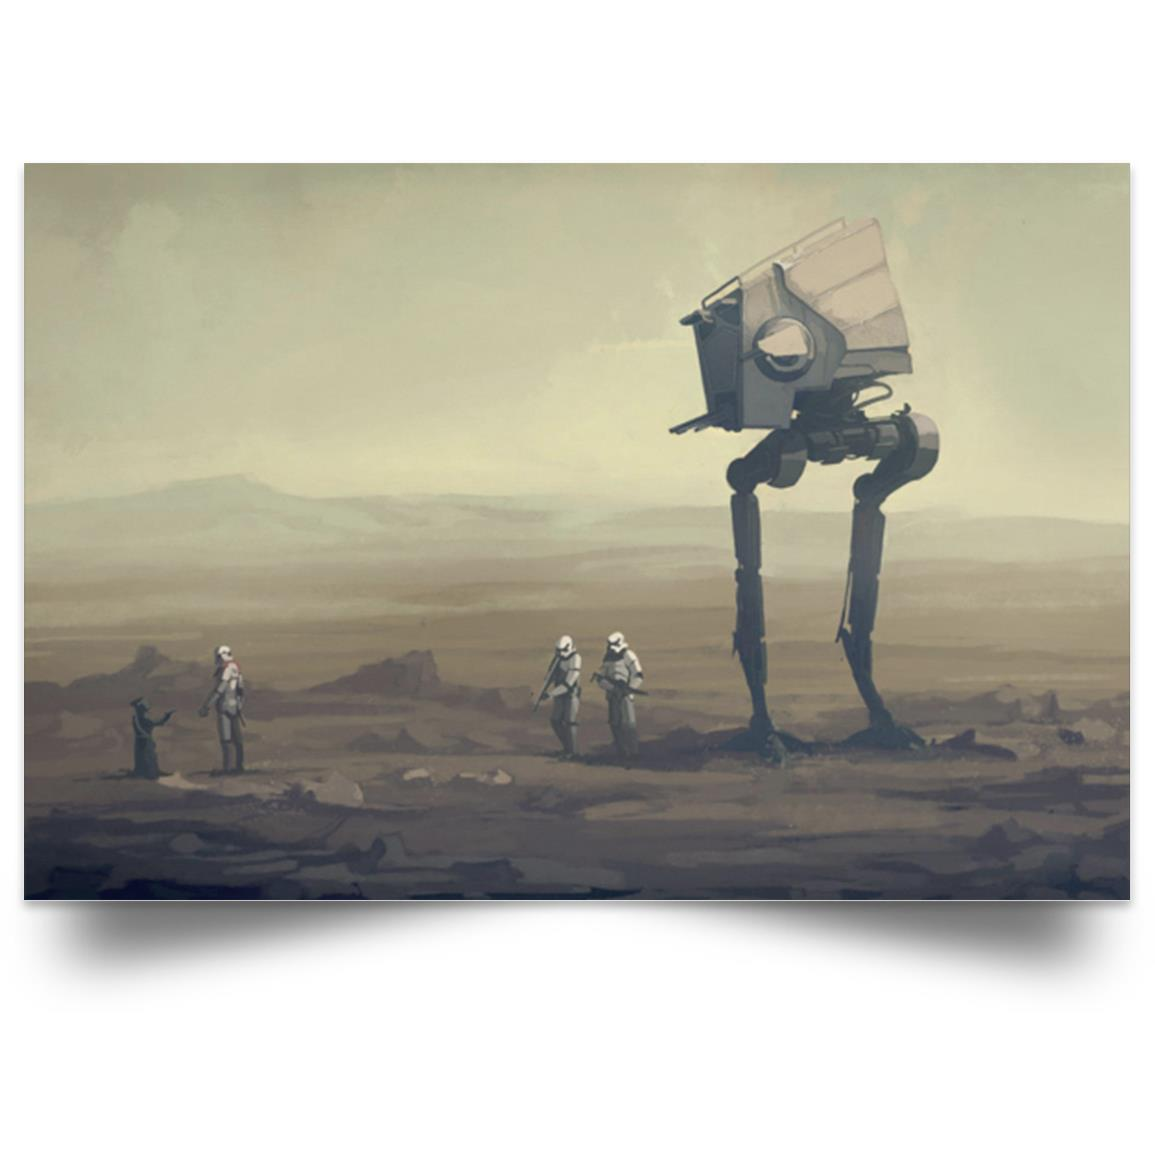 STAR WARS AT-ST WALKER RIDE ON TATOOINE POSTER 1